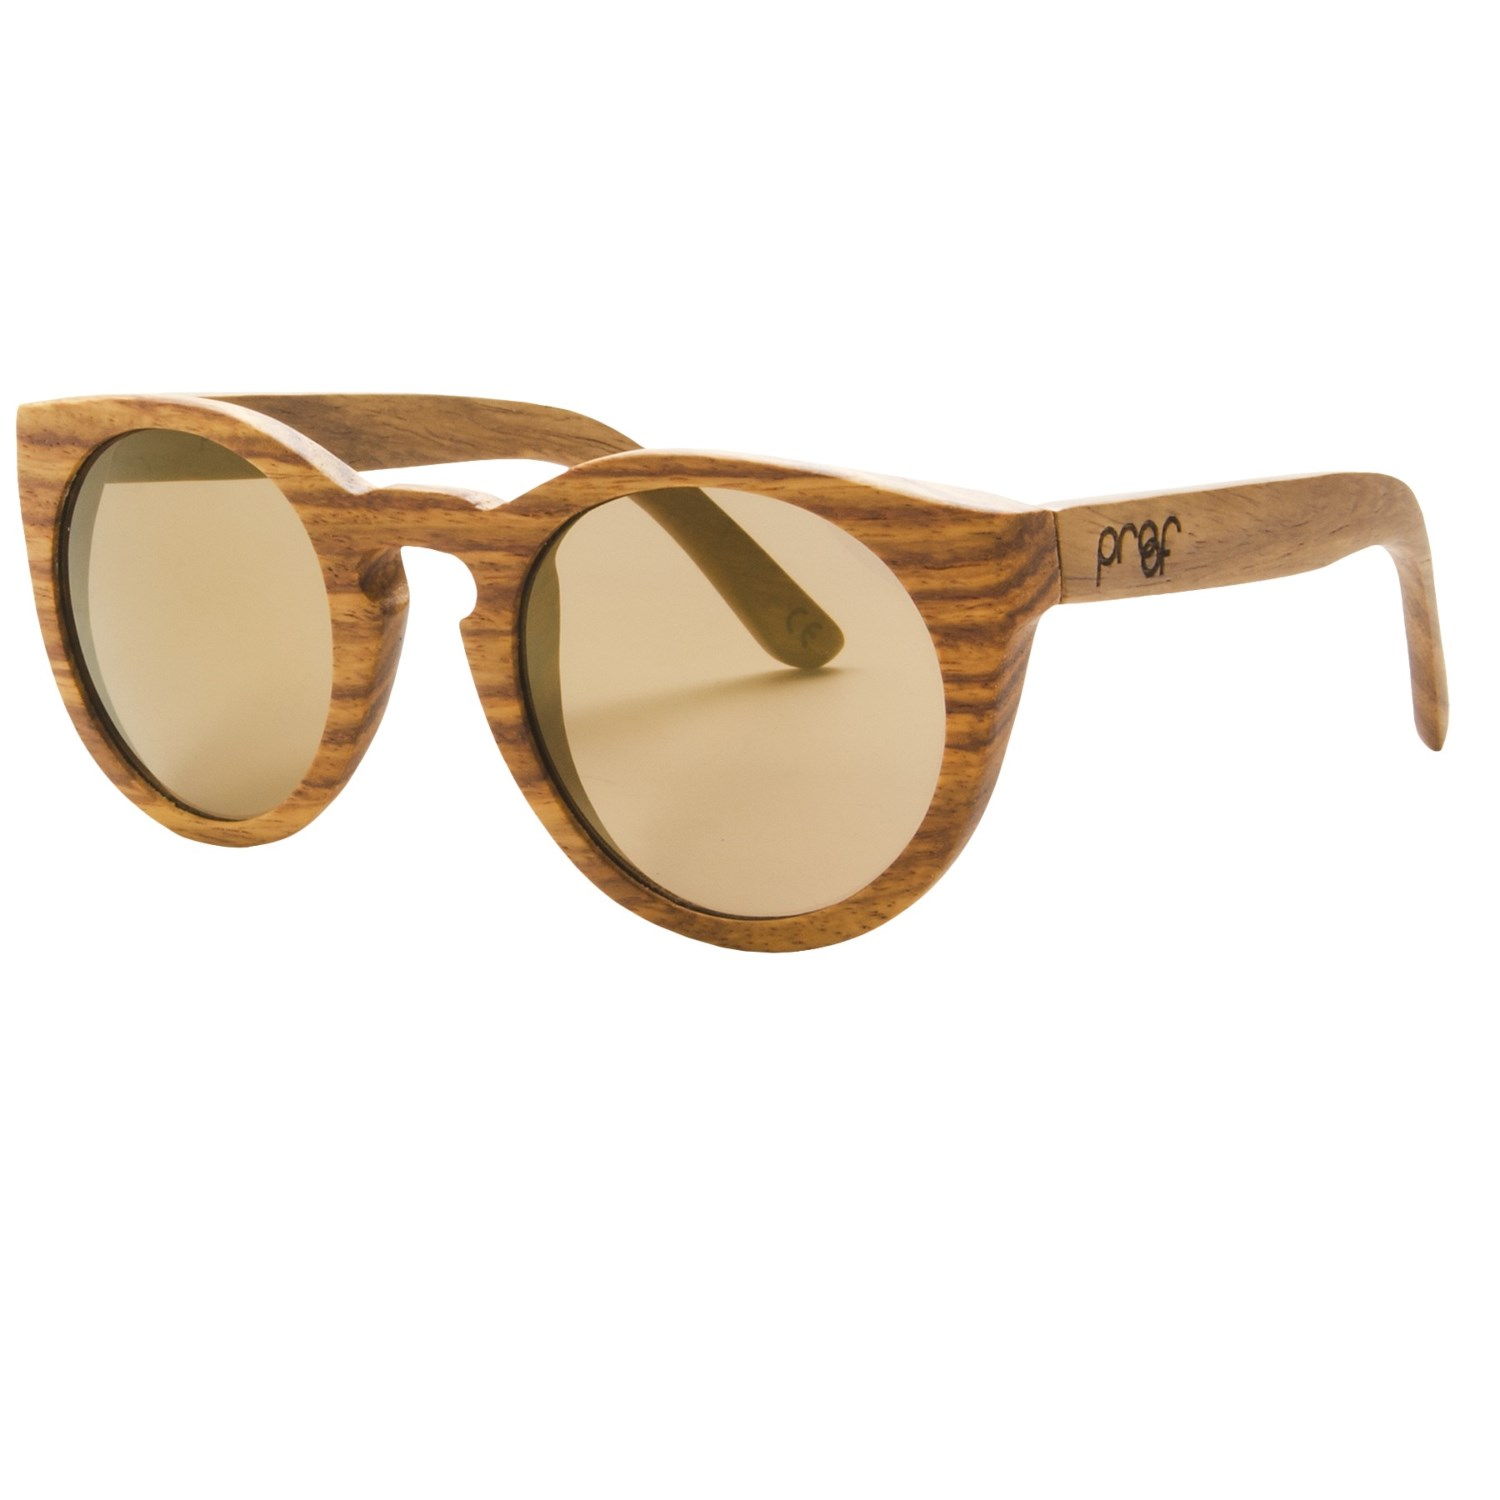 Proof Eyewear Bogus Sunglasses - Wood Frame, Gold Lenses ...